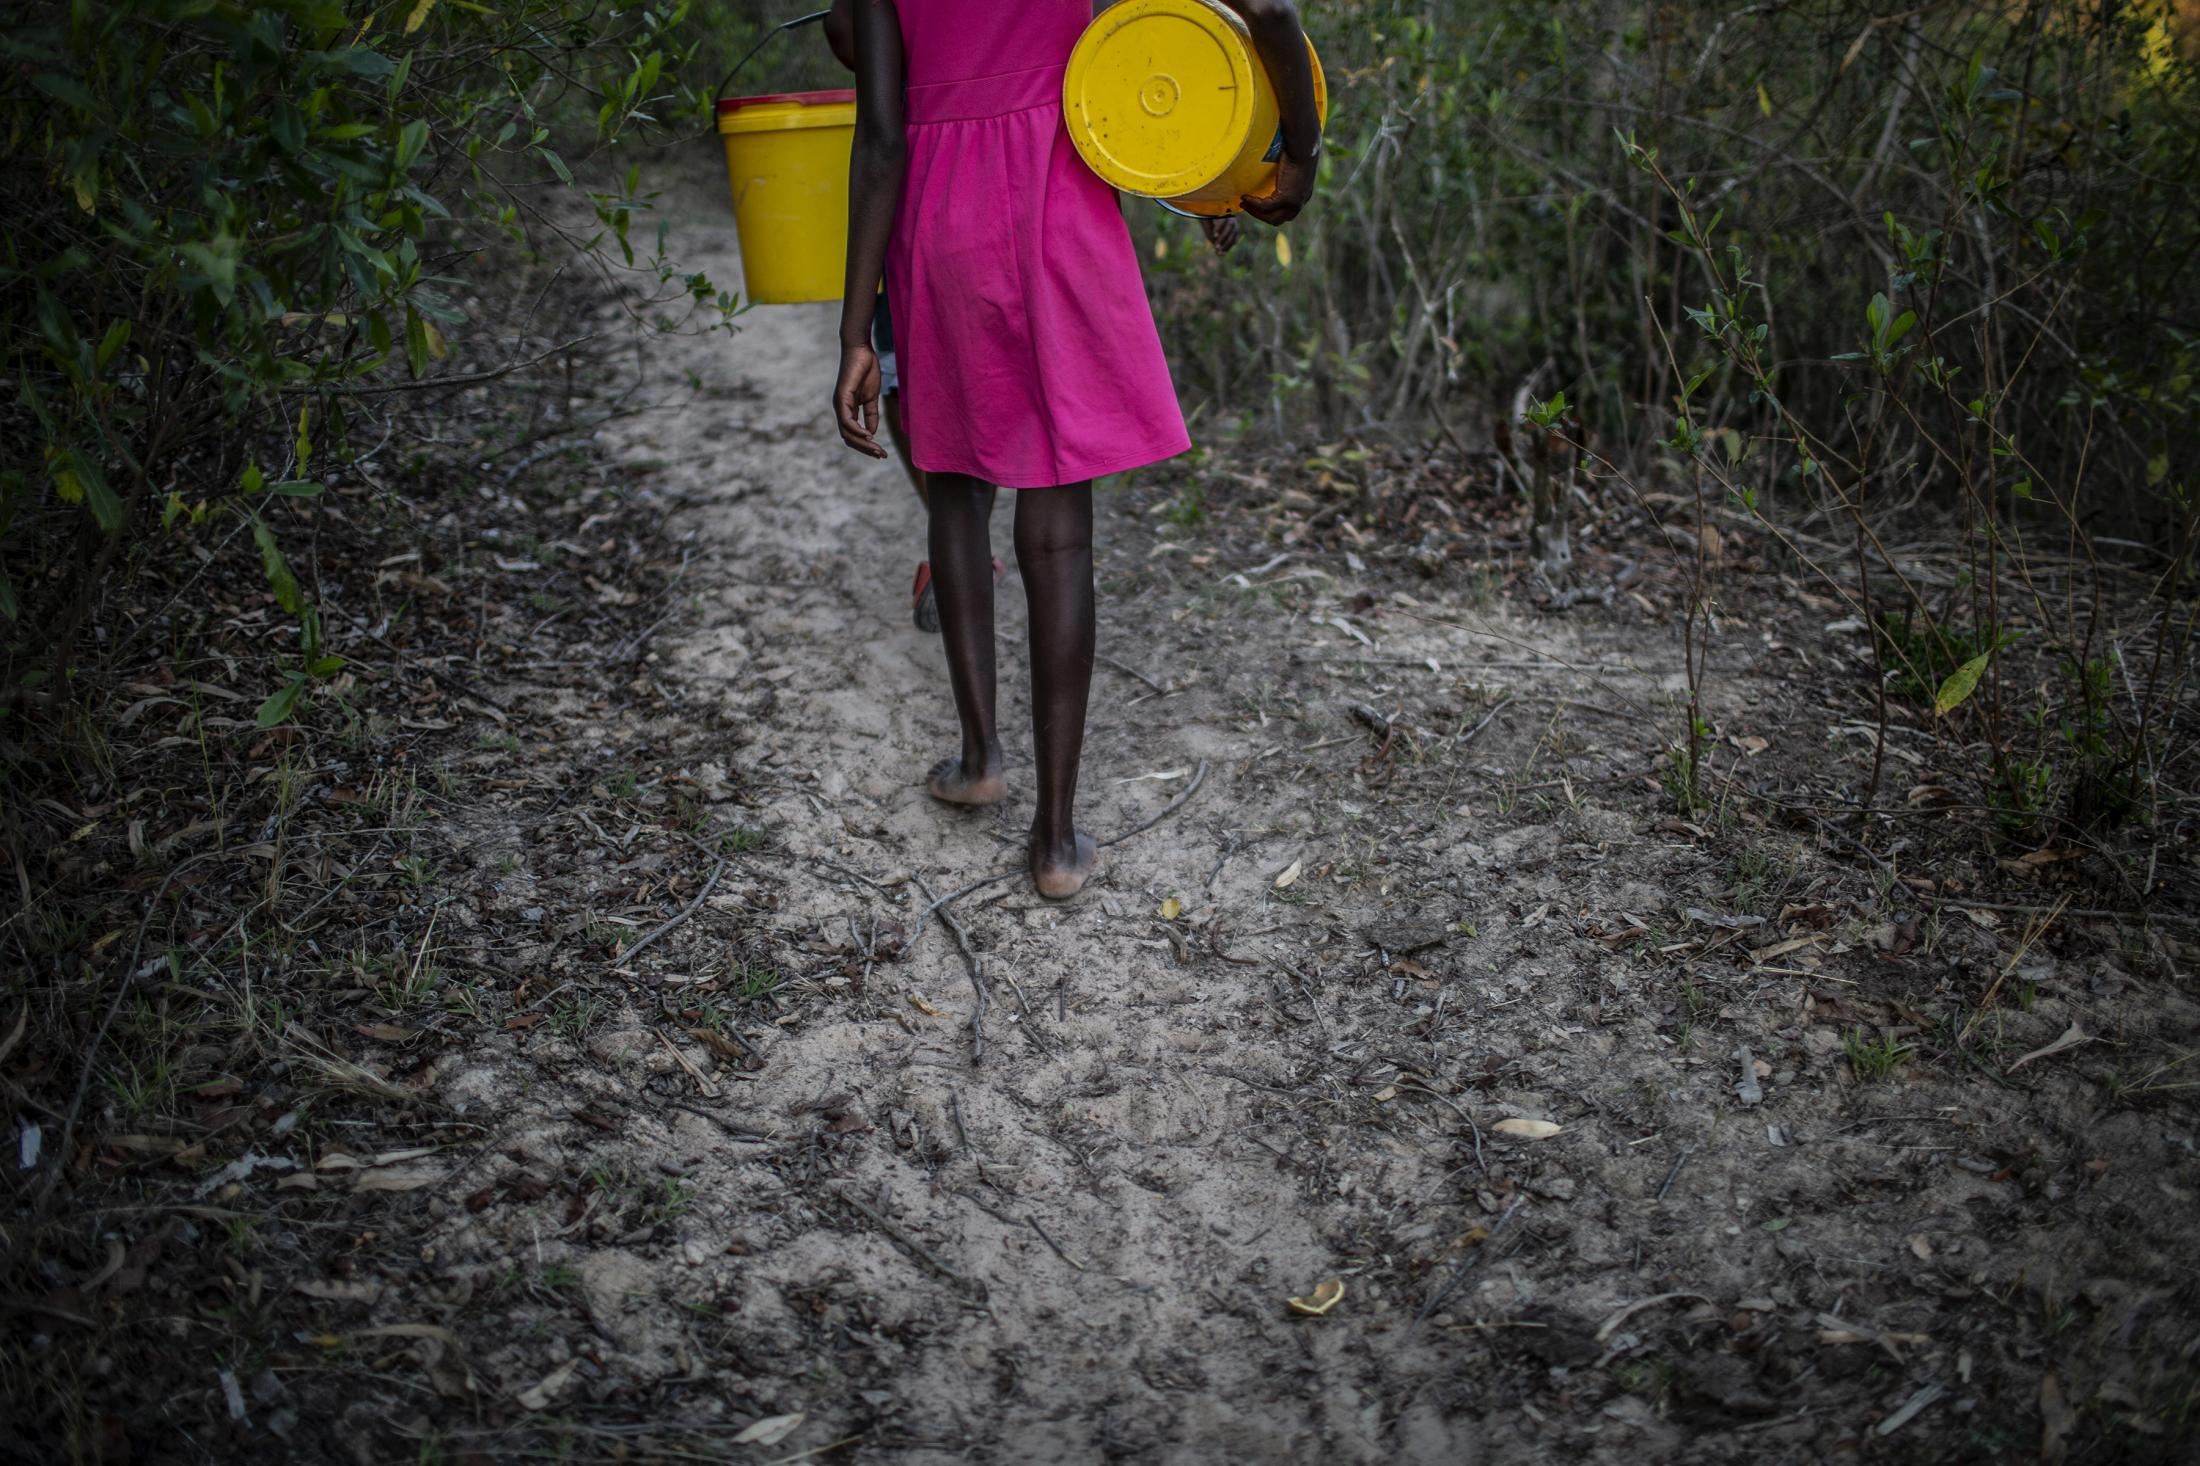 Lana Fariva (14) walks to a nearby spring to fetch water in Masvingo, Zimbabwe on October 07, 2019. The family has no electricity or water at home and have to walk for over a kilometre to fetch water everyday. They have no other option but to use this for drinking and cooking as well. Gulshan Khan for the Swiss Agency for Development and Cooperation (SDC)